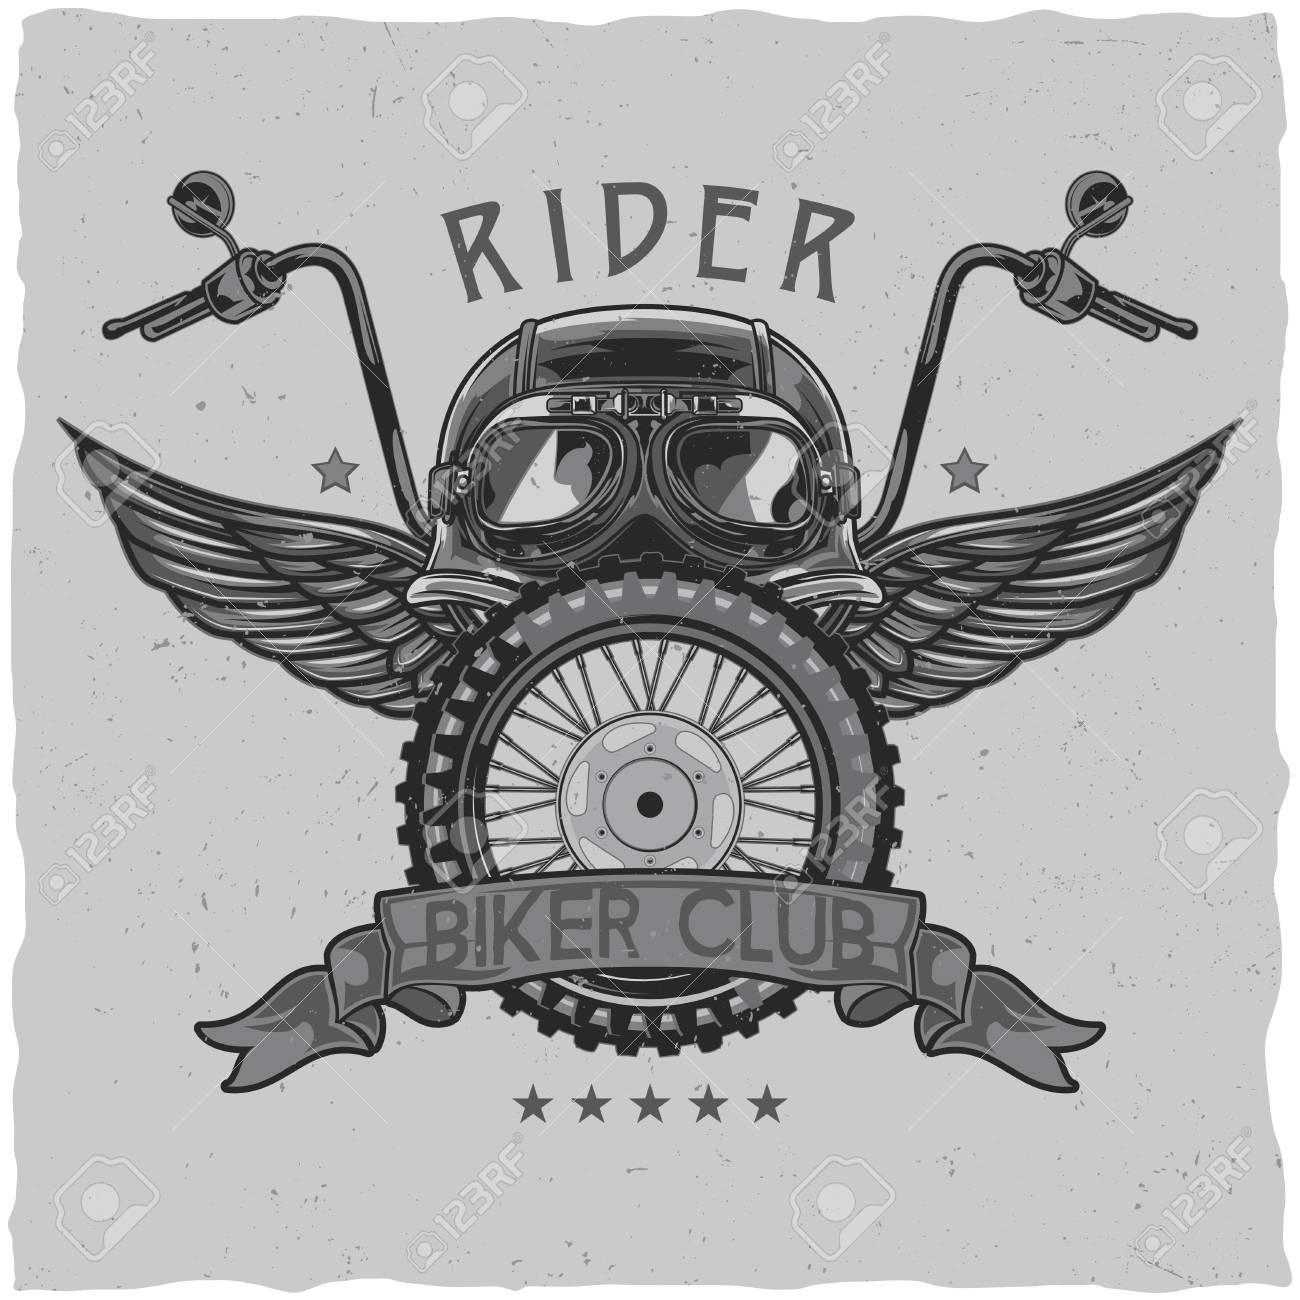 Motorcycle theme t-shirt label design with illustration of helmet, glasses, wheel and wings. - 82521216